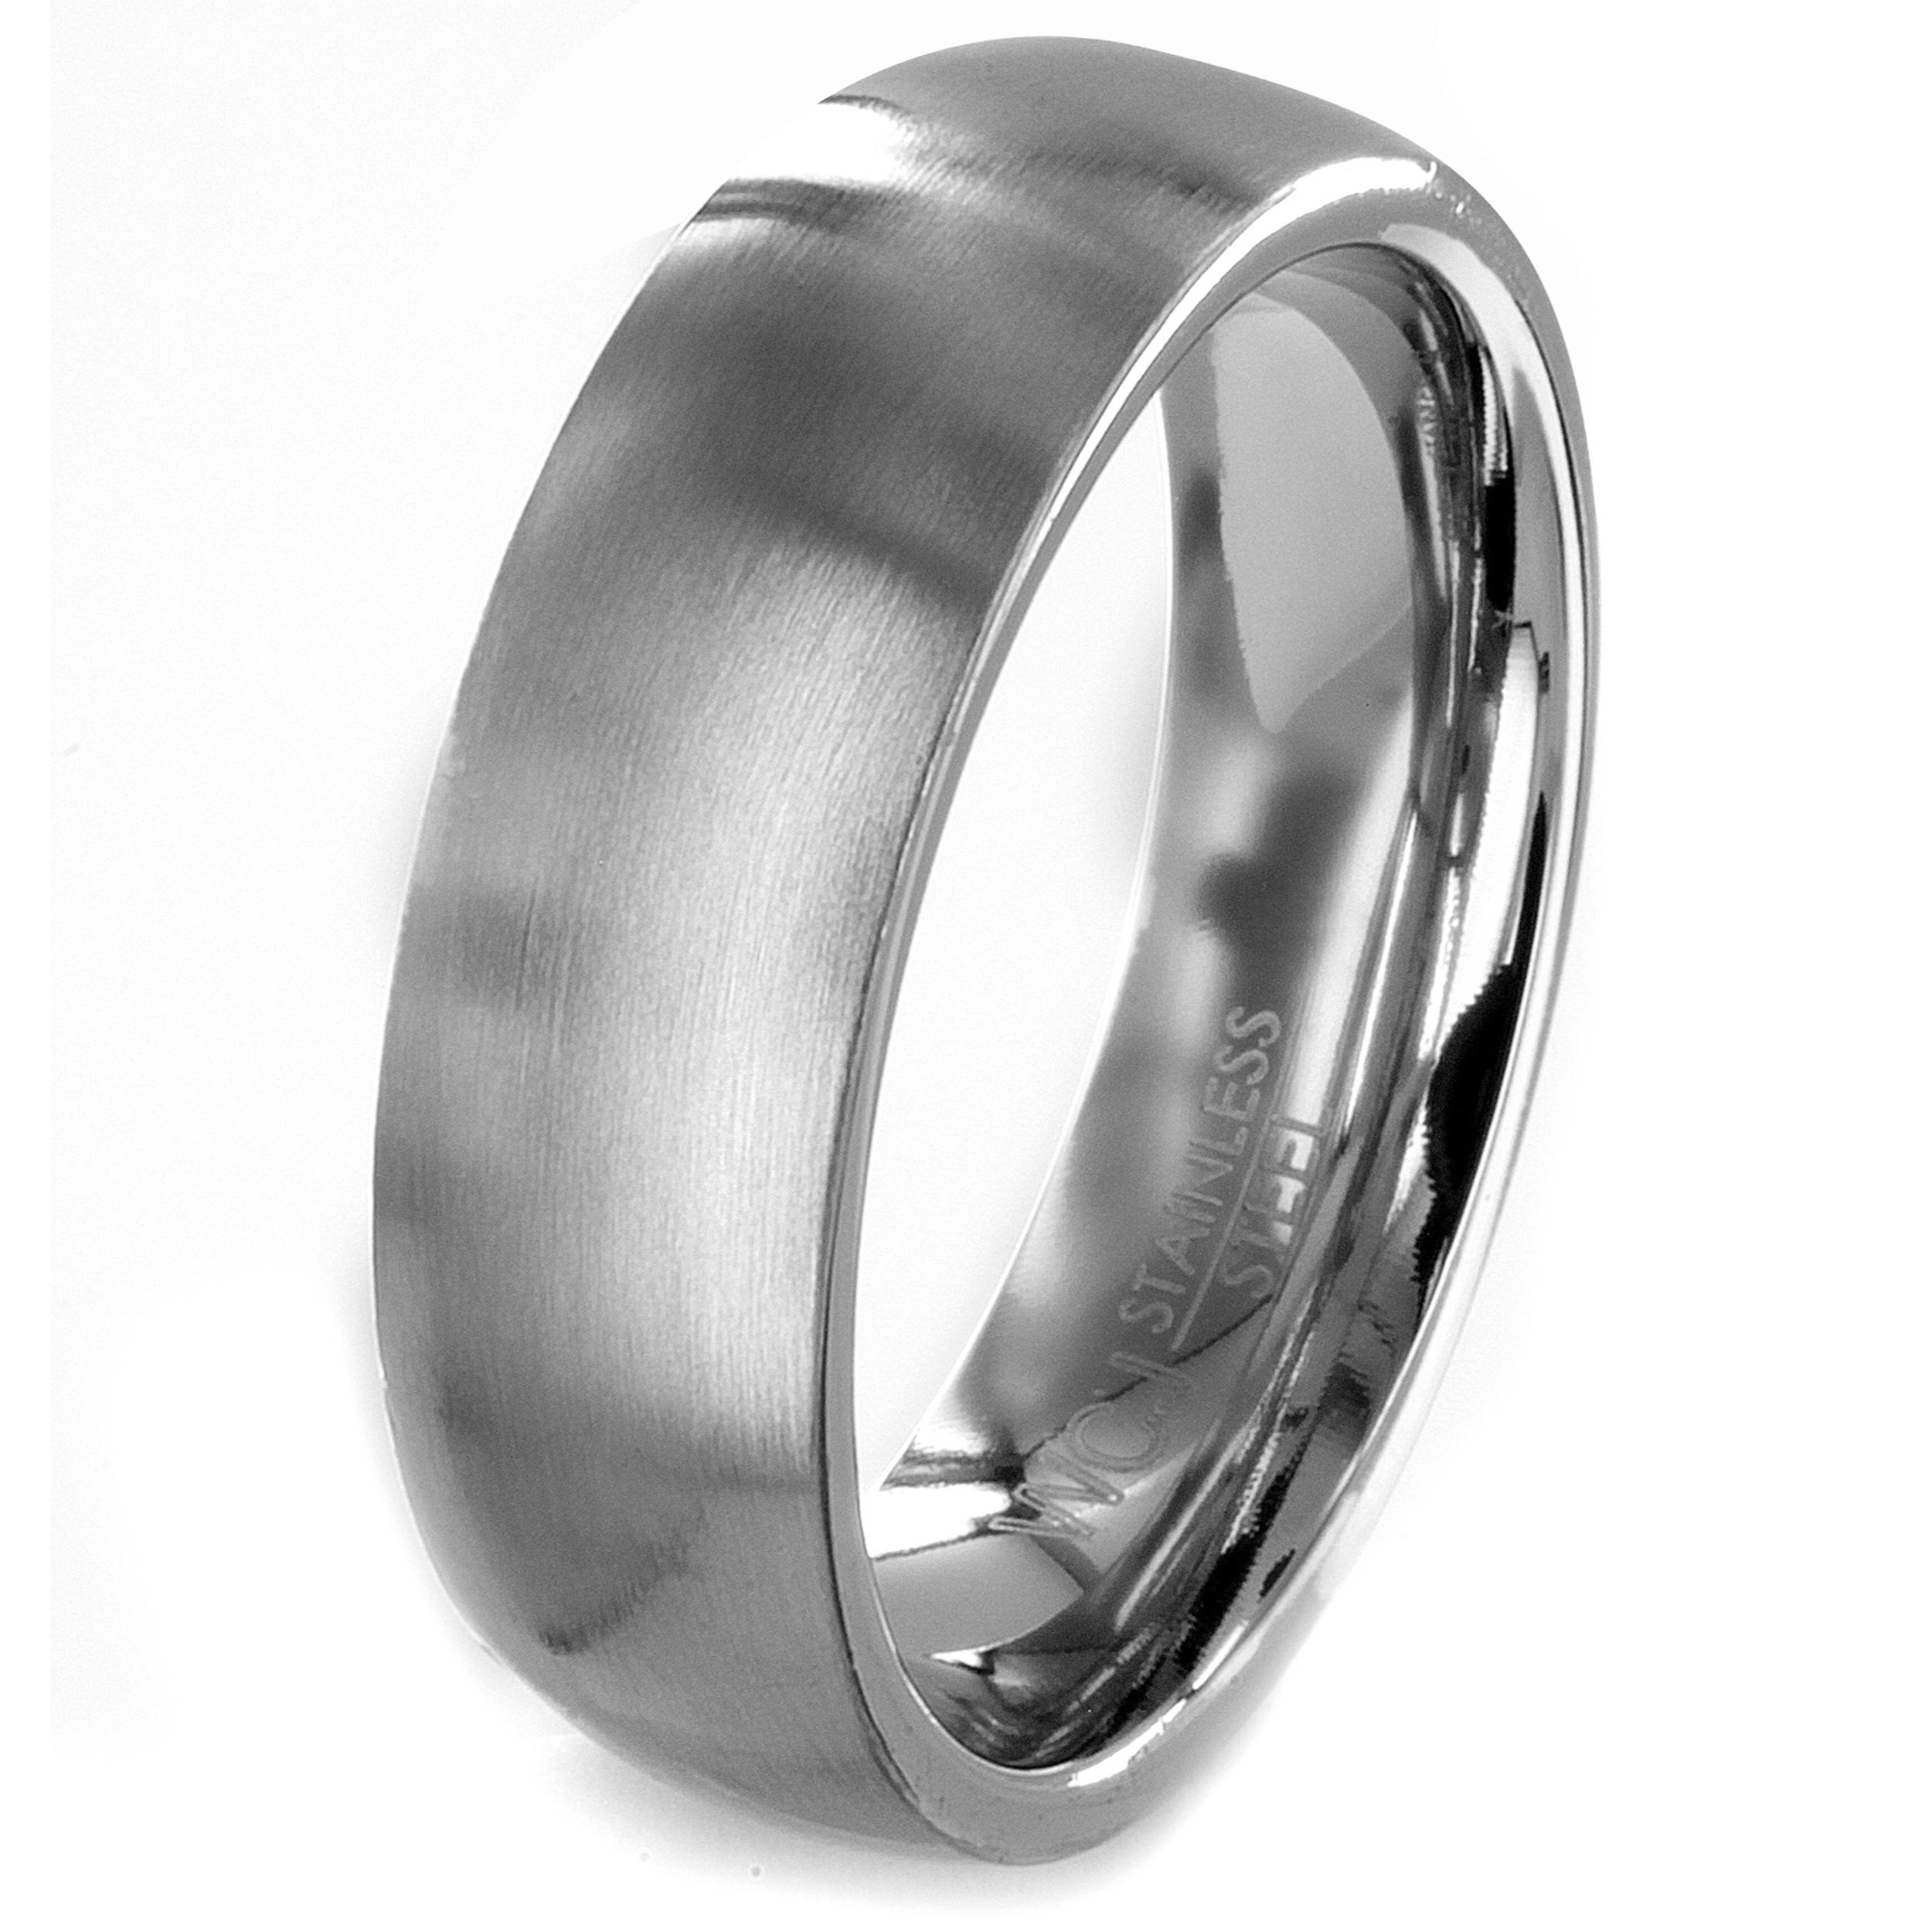 Stainless Steel Brushed Men's Wedding Band - Thumbnail 0